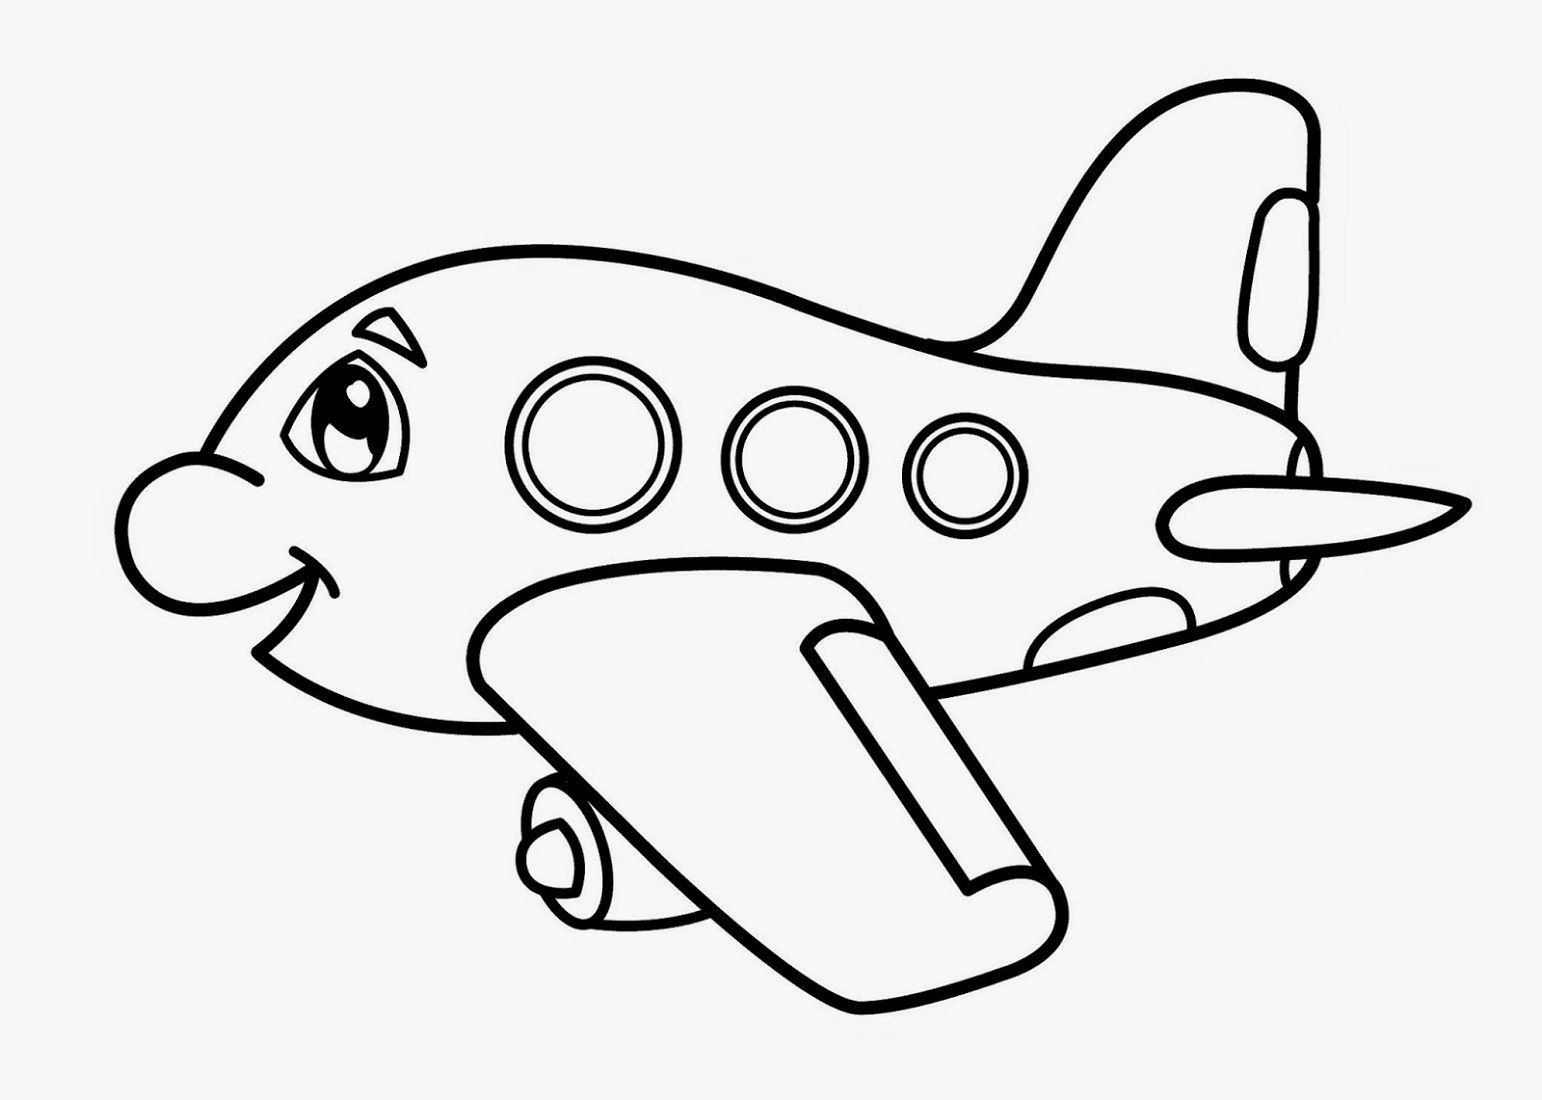 Planes Colouring Pages In 2020 Airplane Coloring Pages Preschool Coloring Pages Coloring Pages For Kids